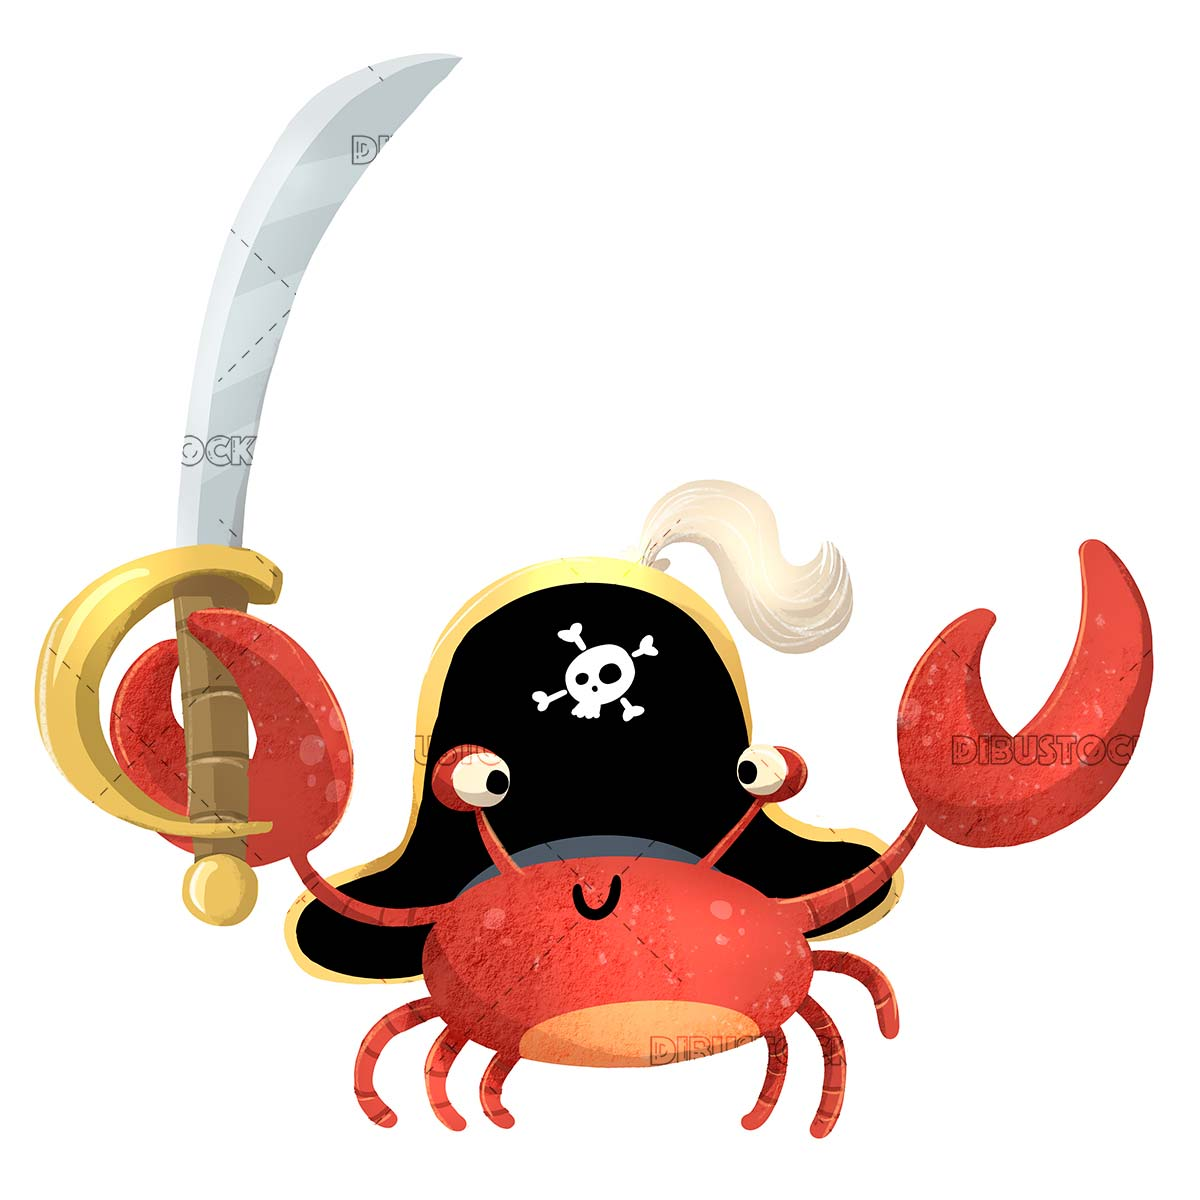 Pirate crab with sword